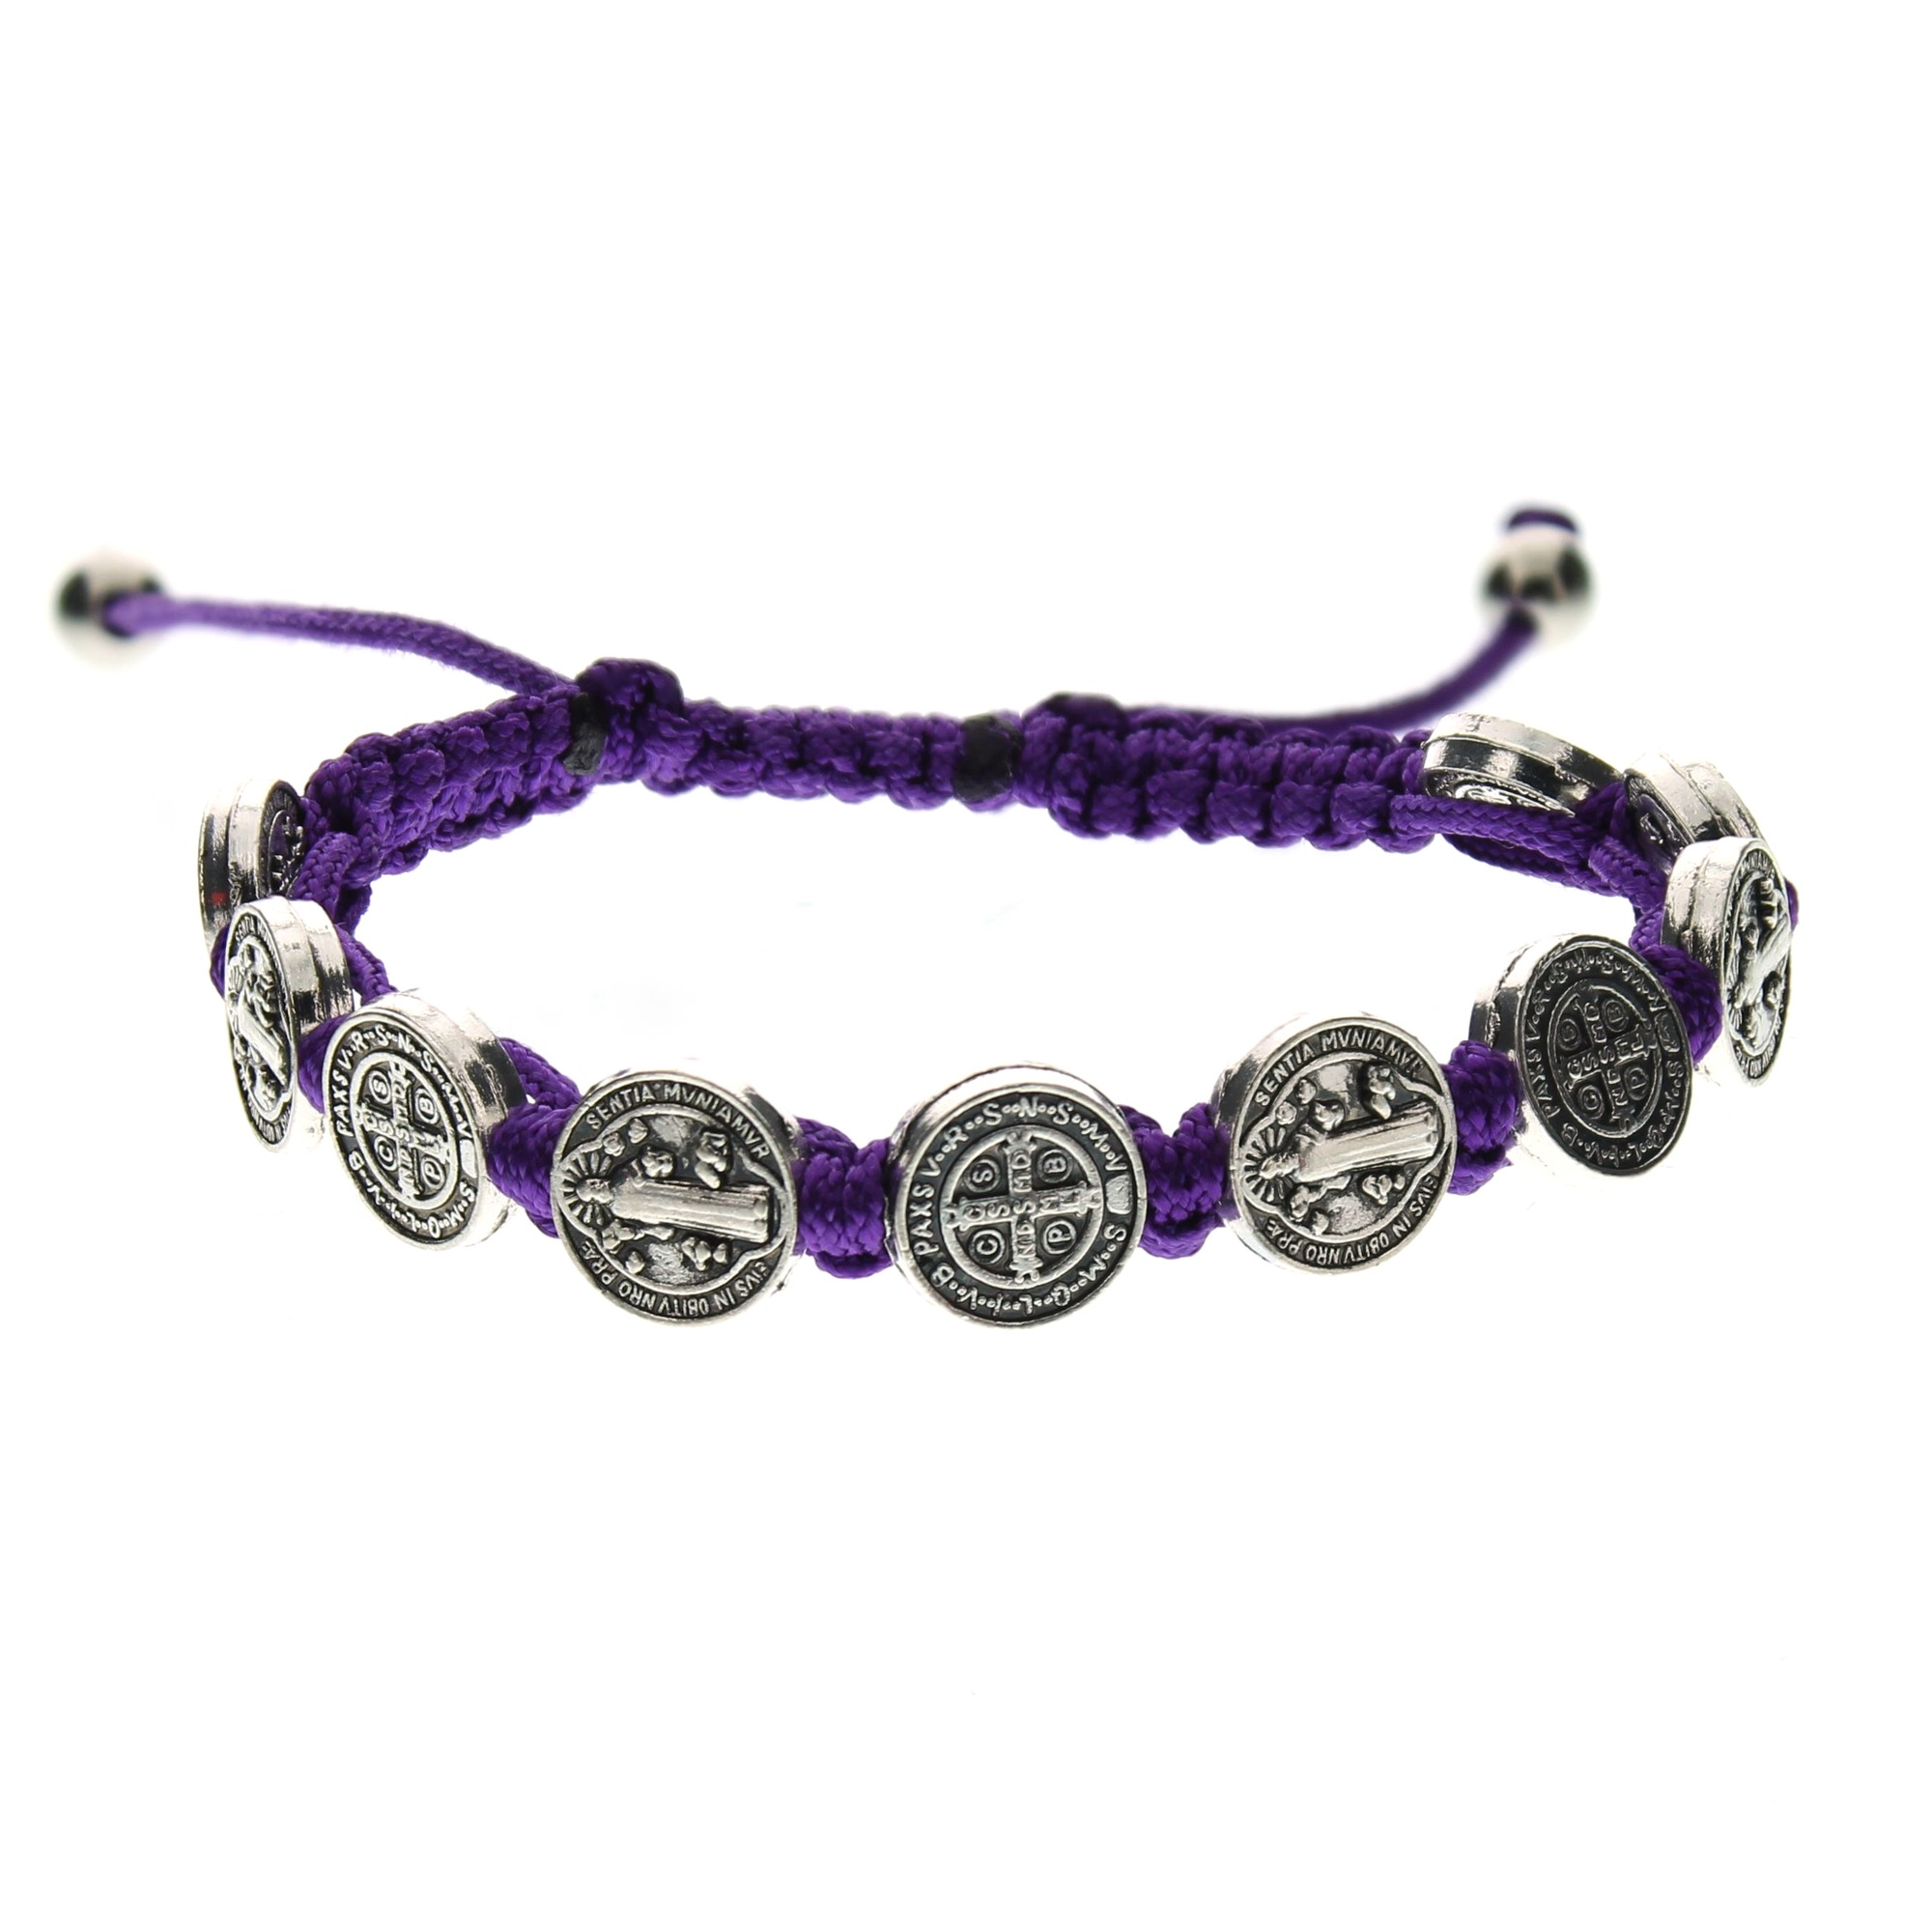 chips catching the review product this be prayer bracelet stone to purple amethyst first orthodox eye